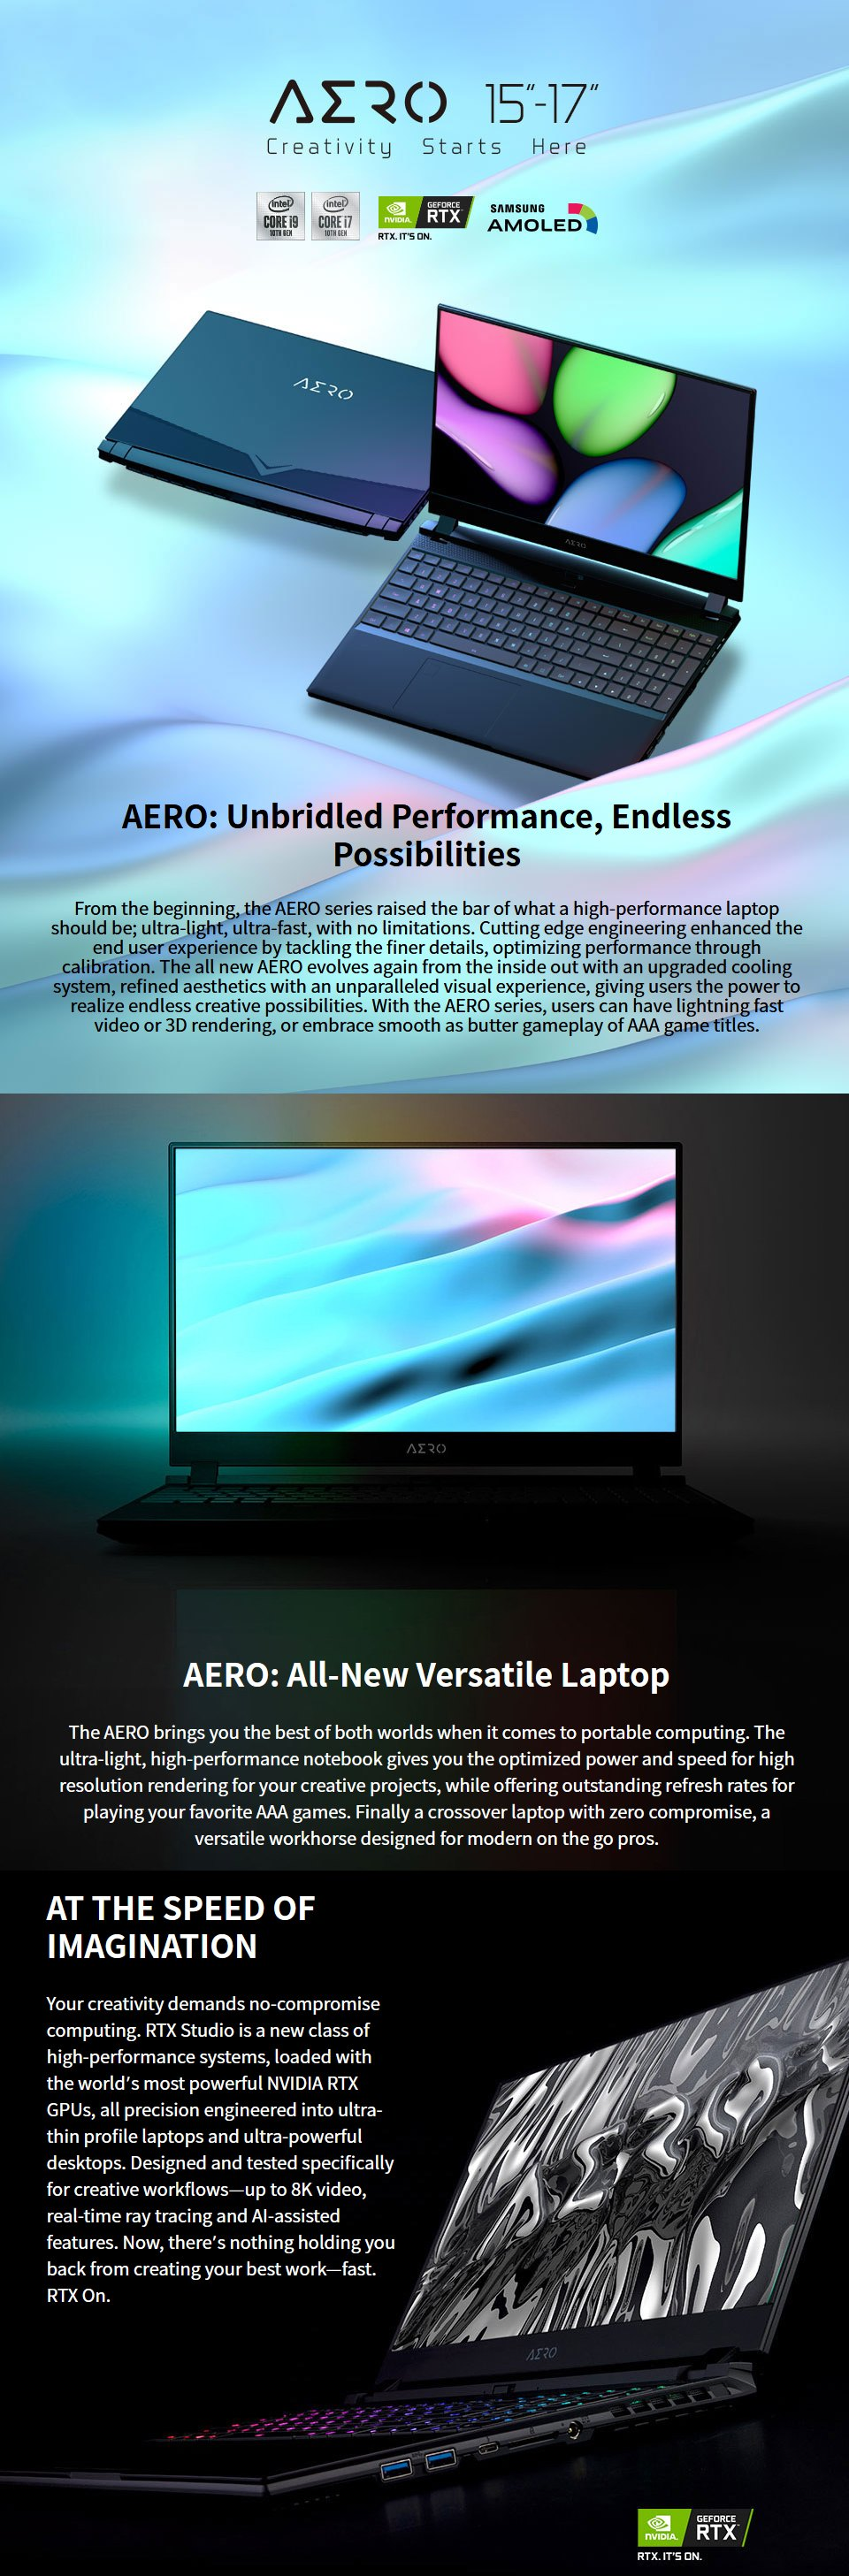 Gigabyte AERO 17 Core i9 RTX 2070 Super 17.3in UHD HDR Laptop features